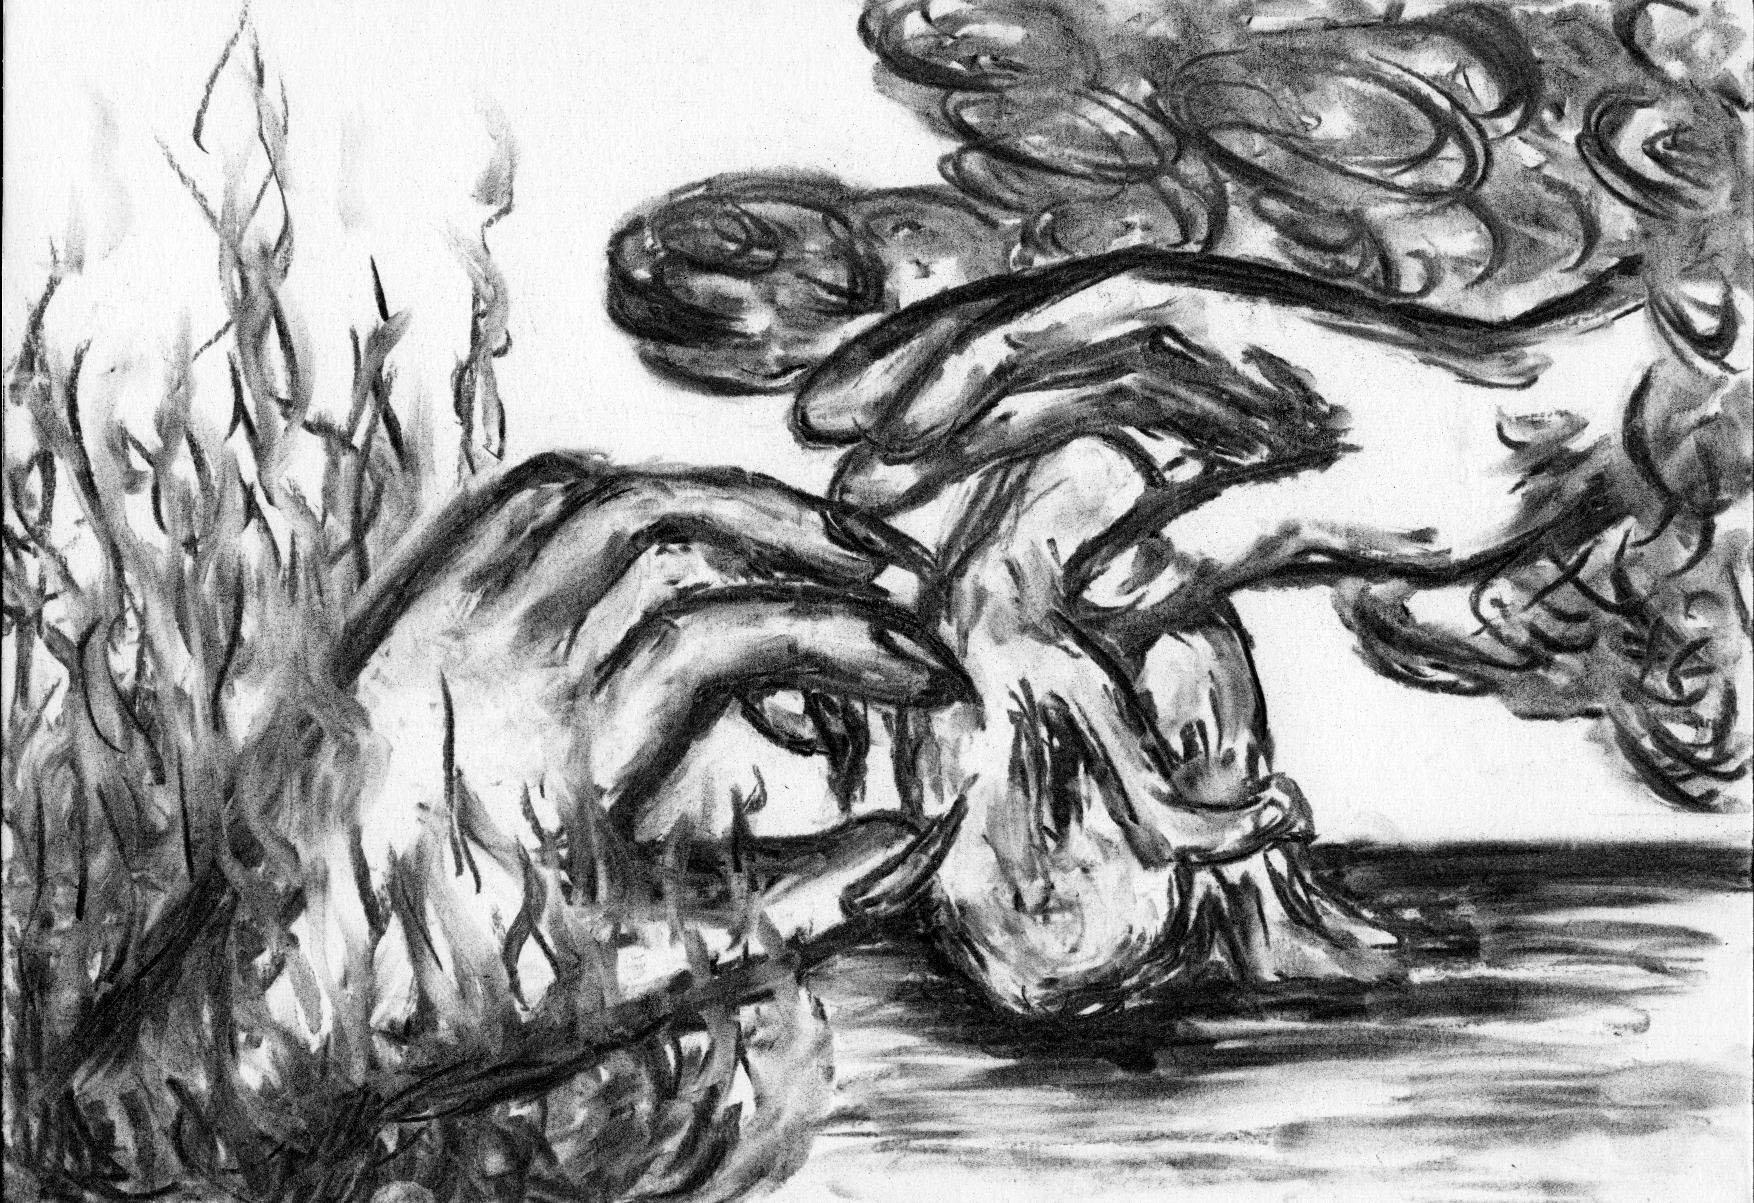 Hell Drawings Pictures to Pin on Pinterest - PinsDaddy